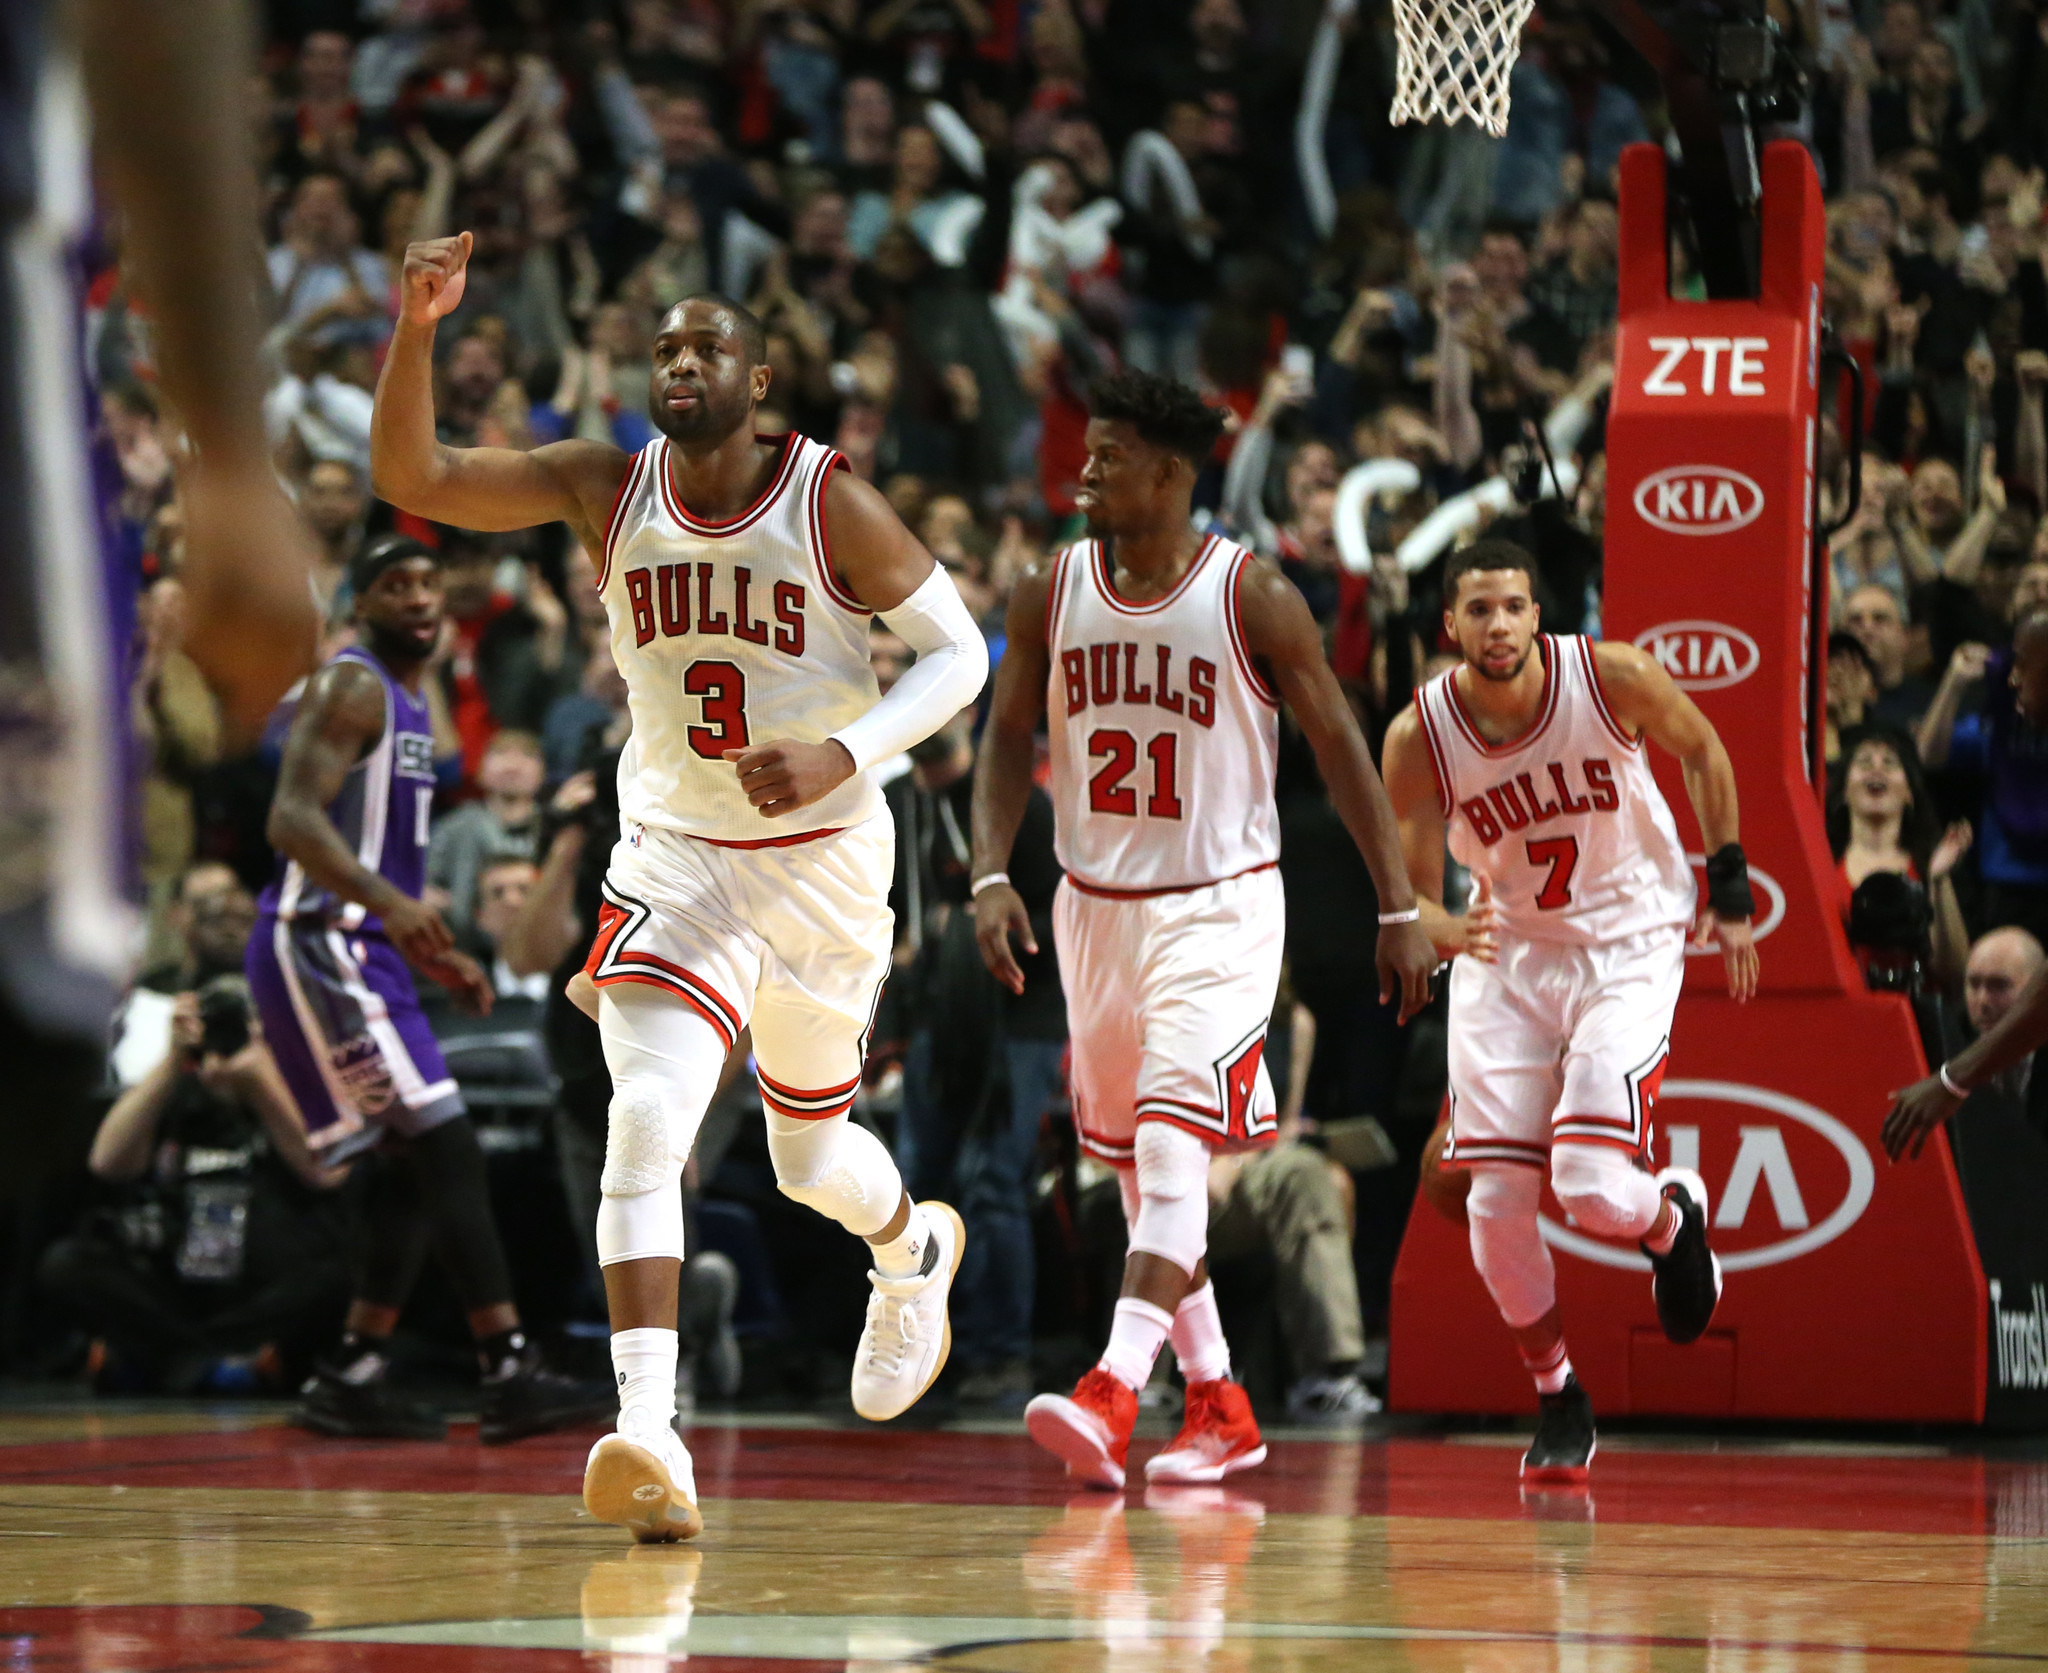 Ct-bulls-vs-kings-photos-20170121